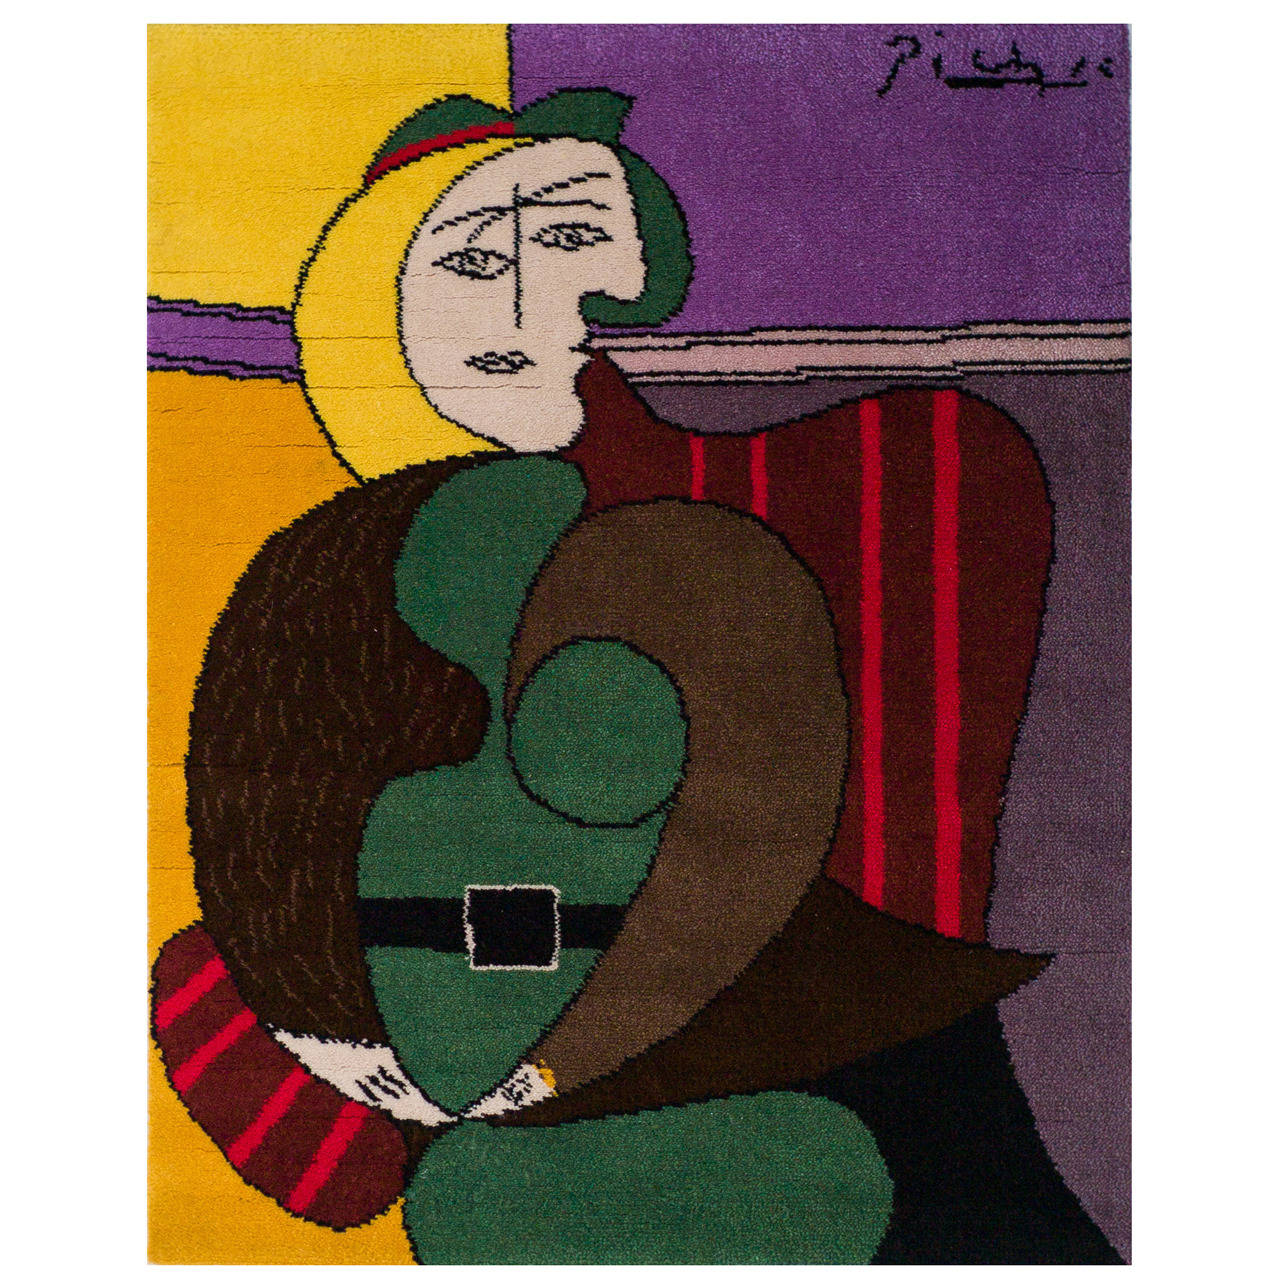 wool tapestry after a design by picasso femme assise. Black Bedroom Furniture Sets. Home Design Ideas